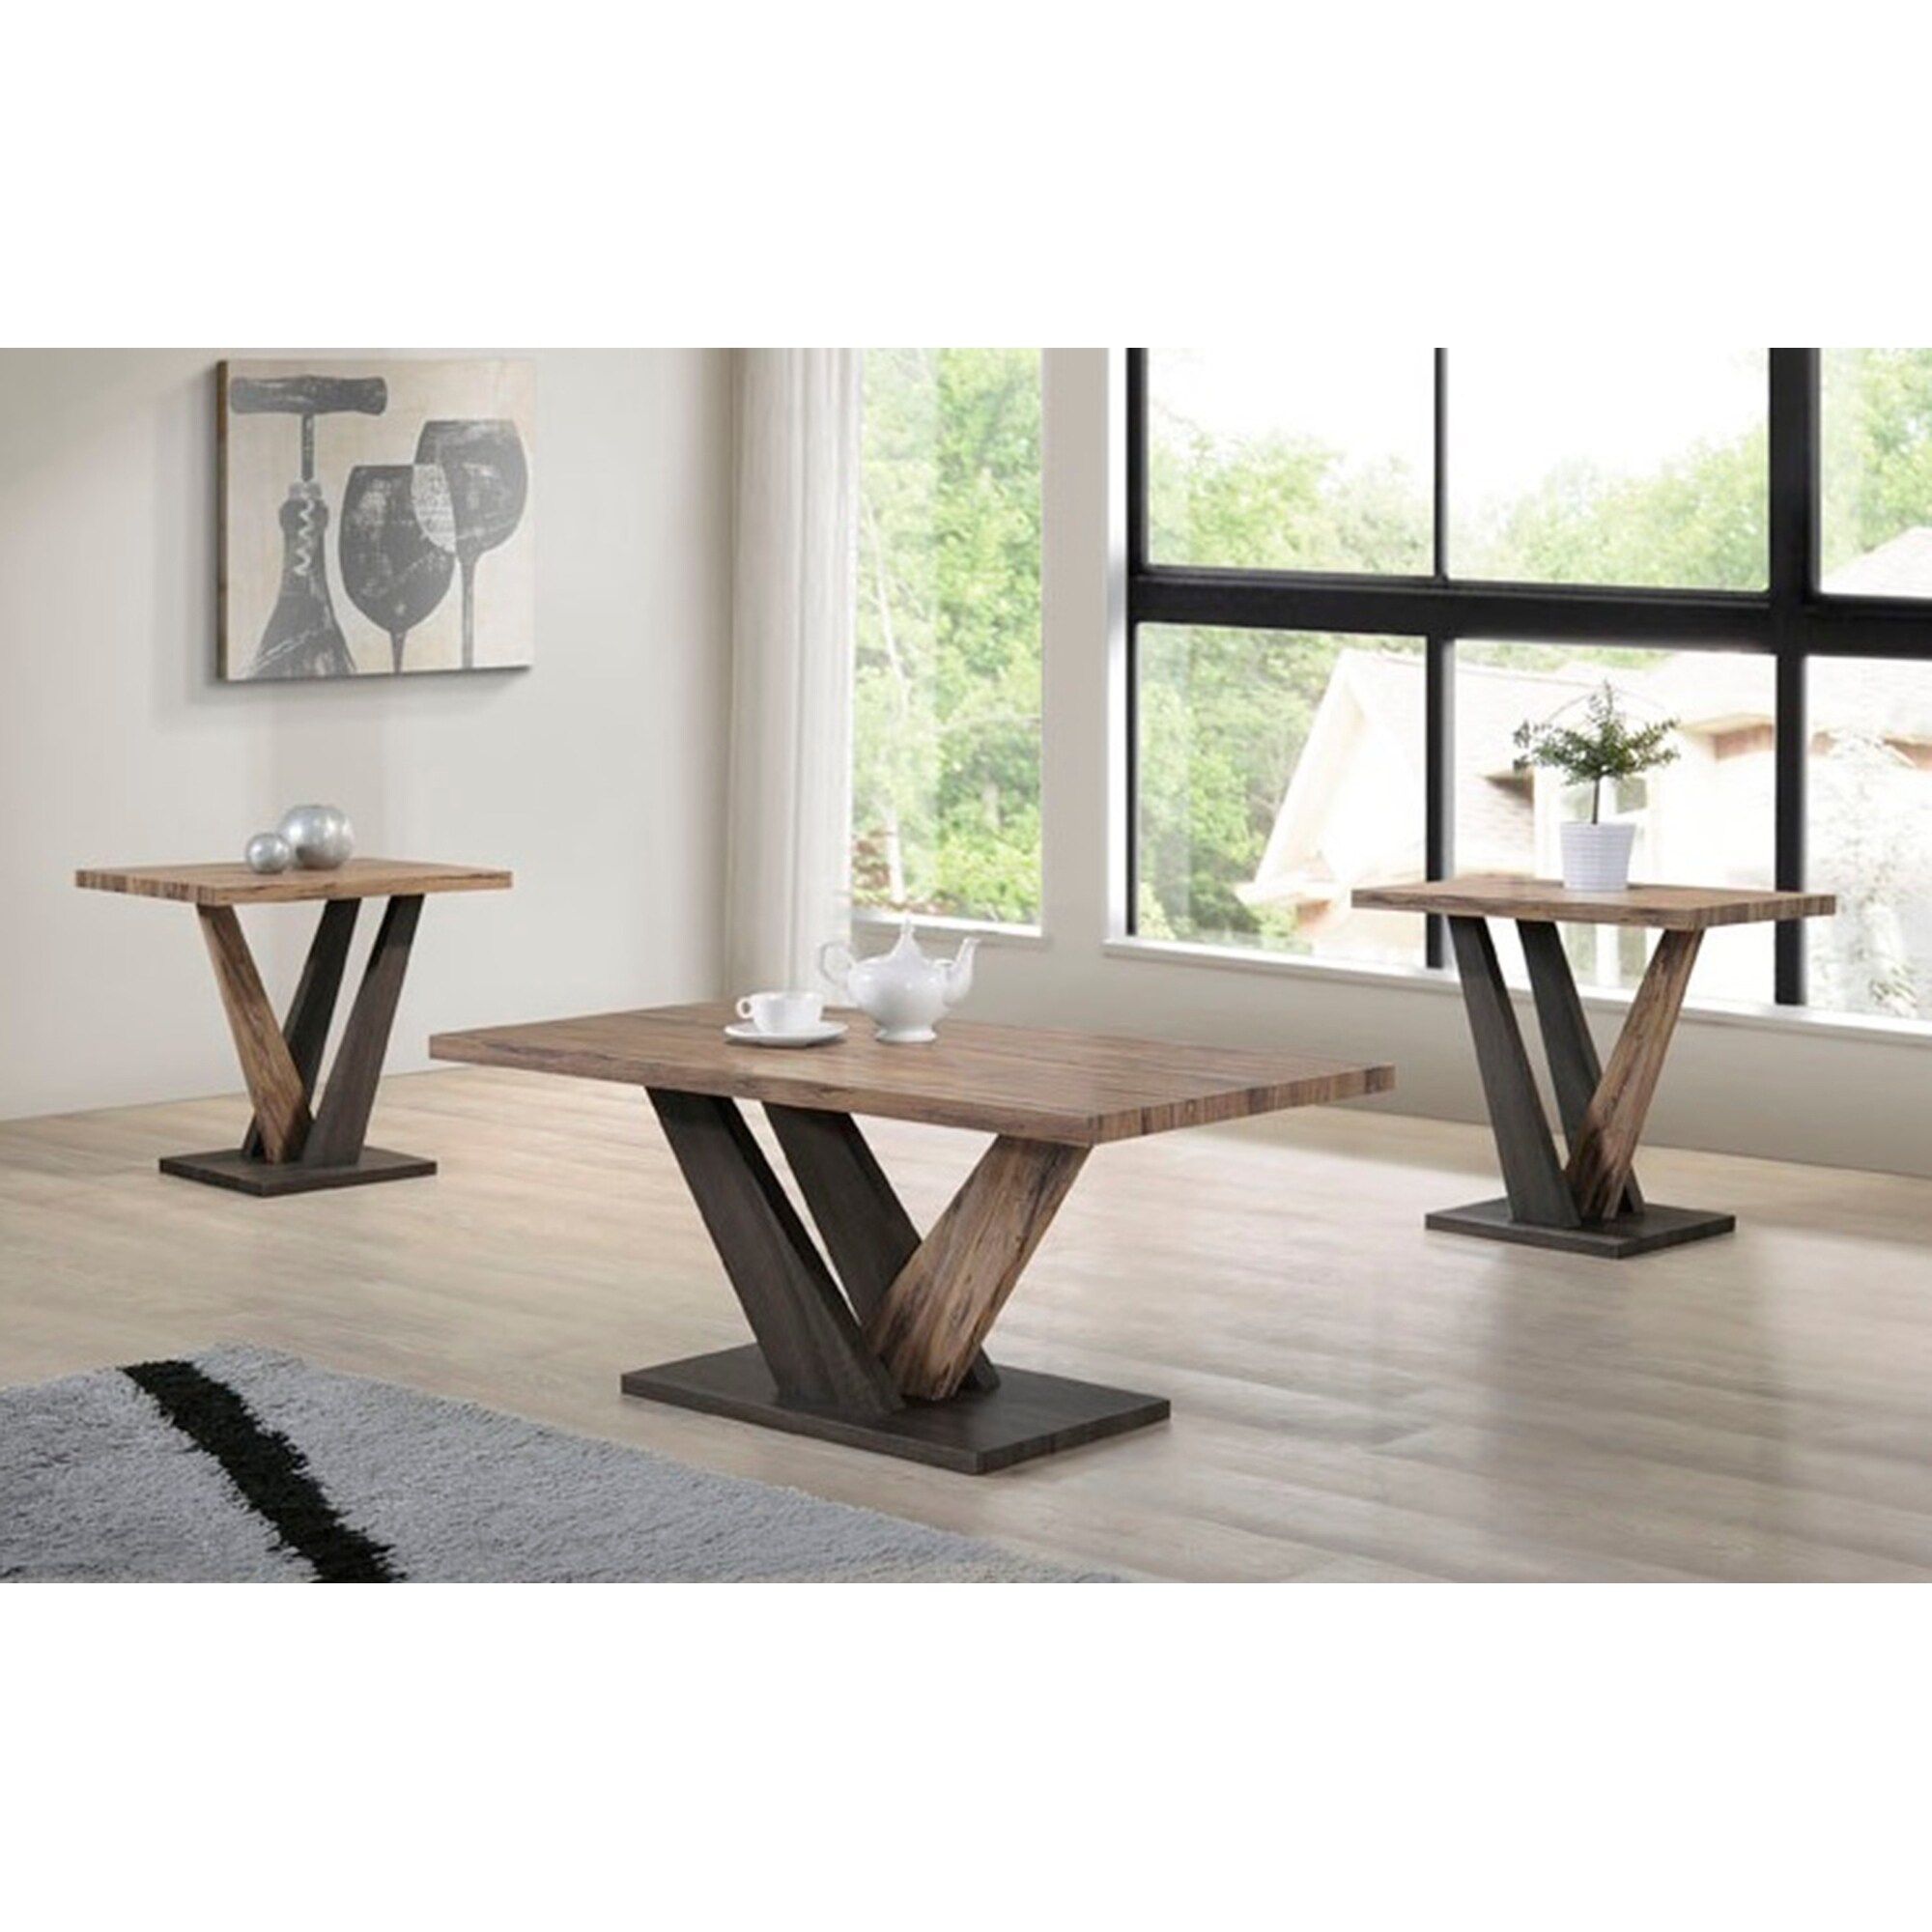 indoor light brown and dark wooden modern rustic rectangular coffee table set with two end tables free shipping today ethan allen furniture catalog custom cut top acme replacement